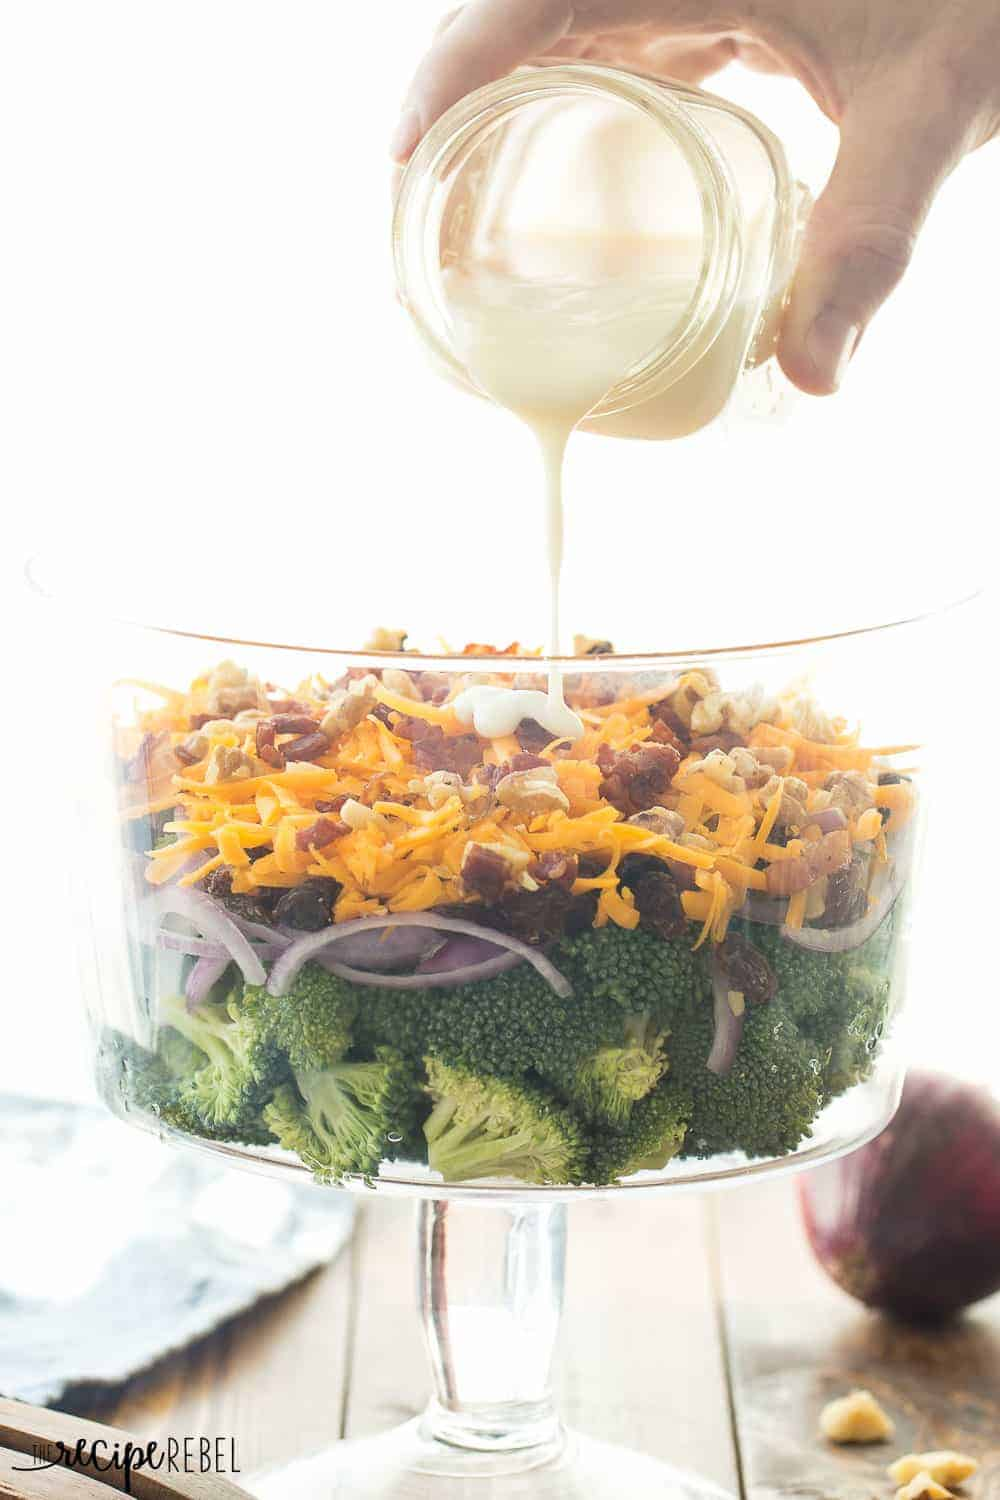 My husband's FAVORITE! This Layered Broccoli Salad is loaded with cheddar cheese, raisins, cranberries, bacon and walnuts and served with a sweet and tangy dressing!